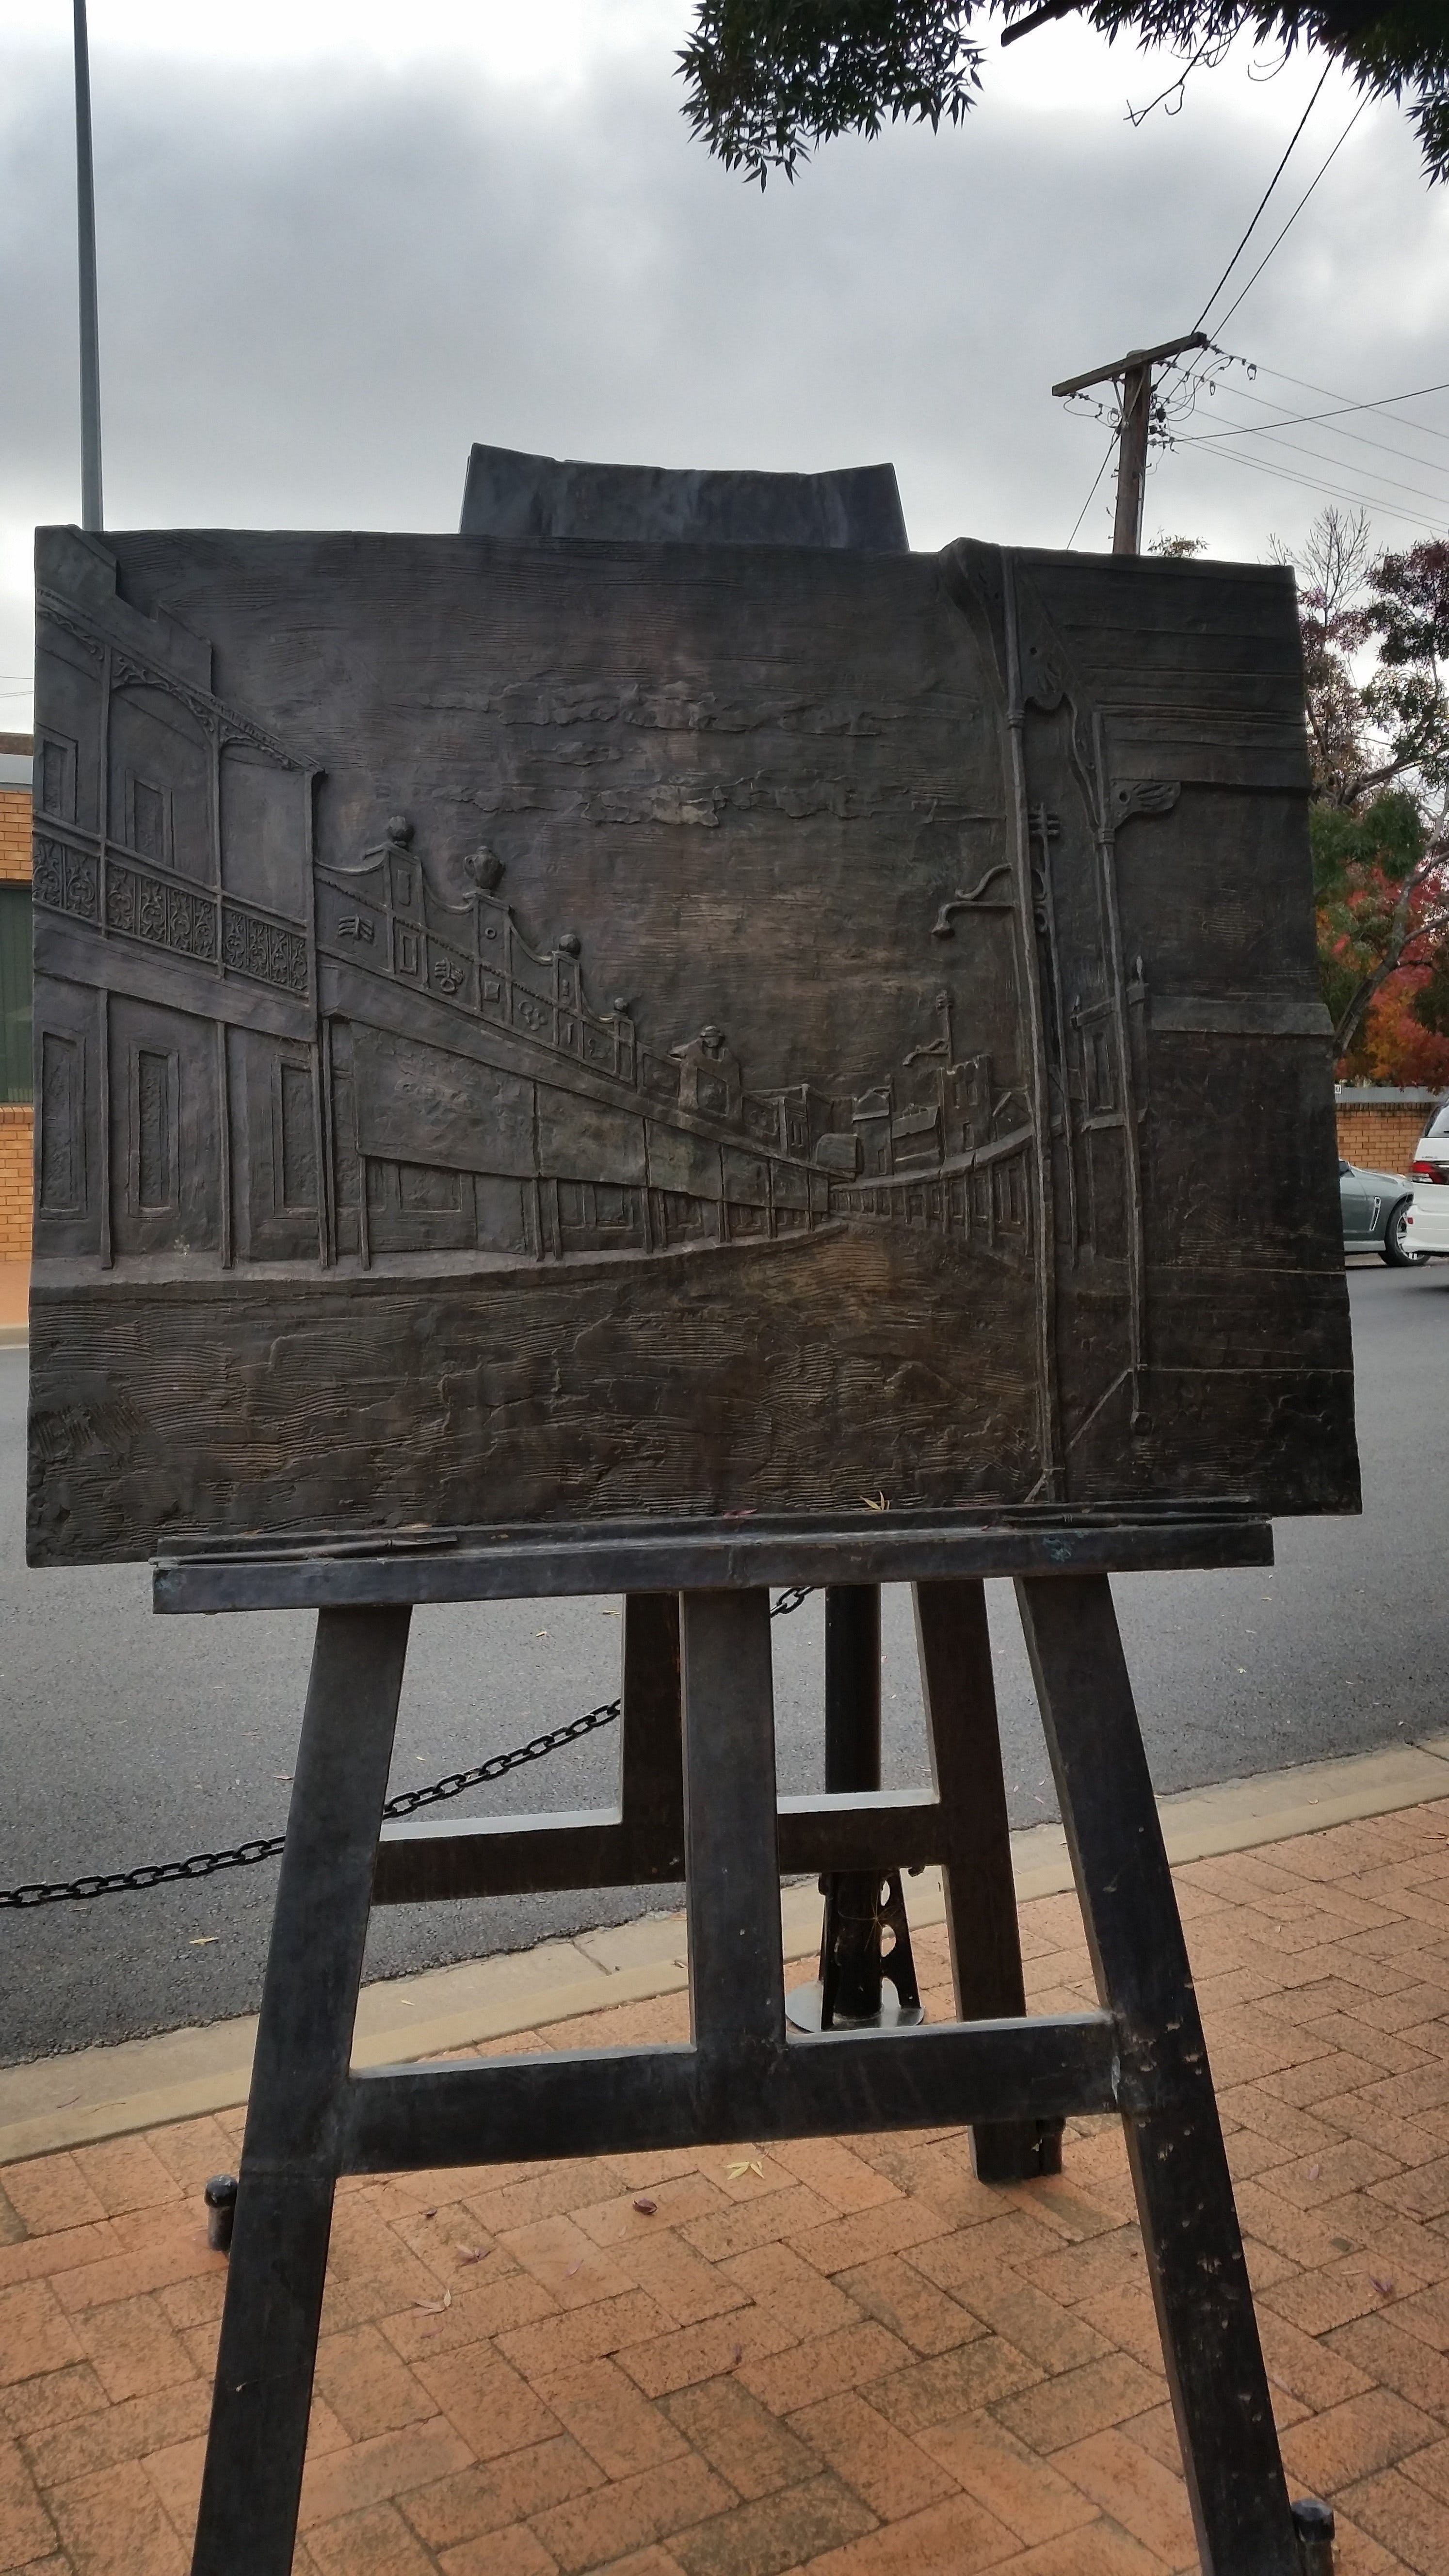 Russell Drysdale Easel Sculpture - Melbourne Tourism